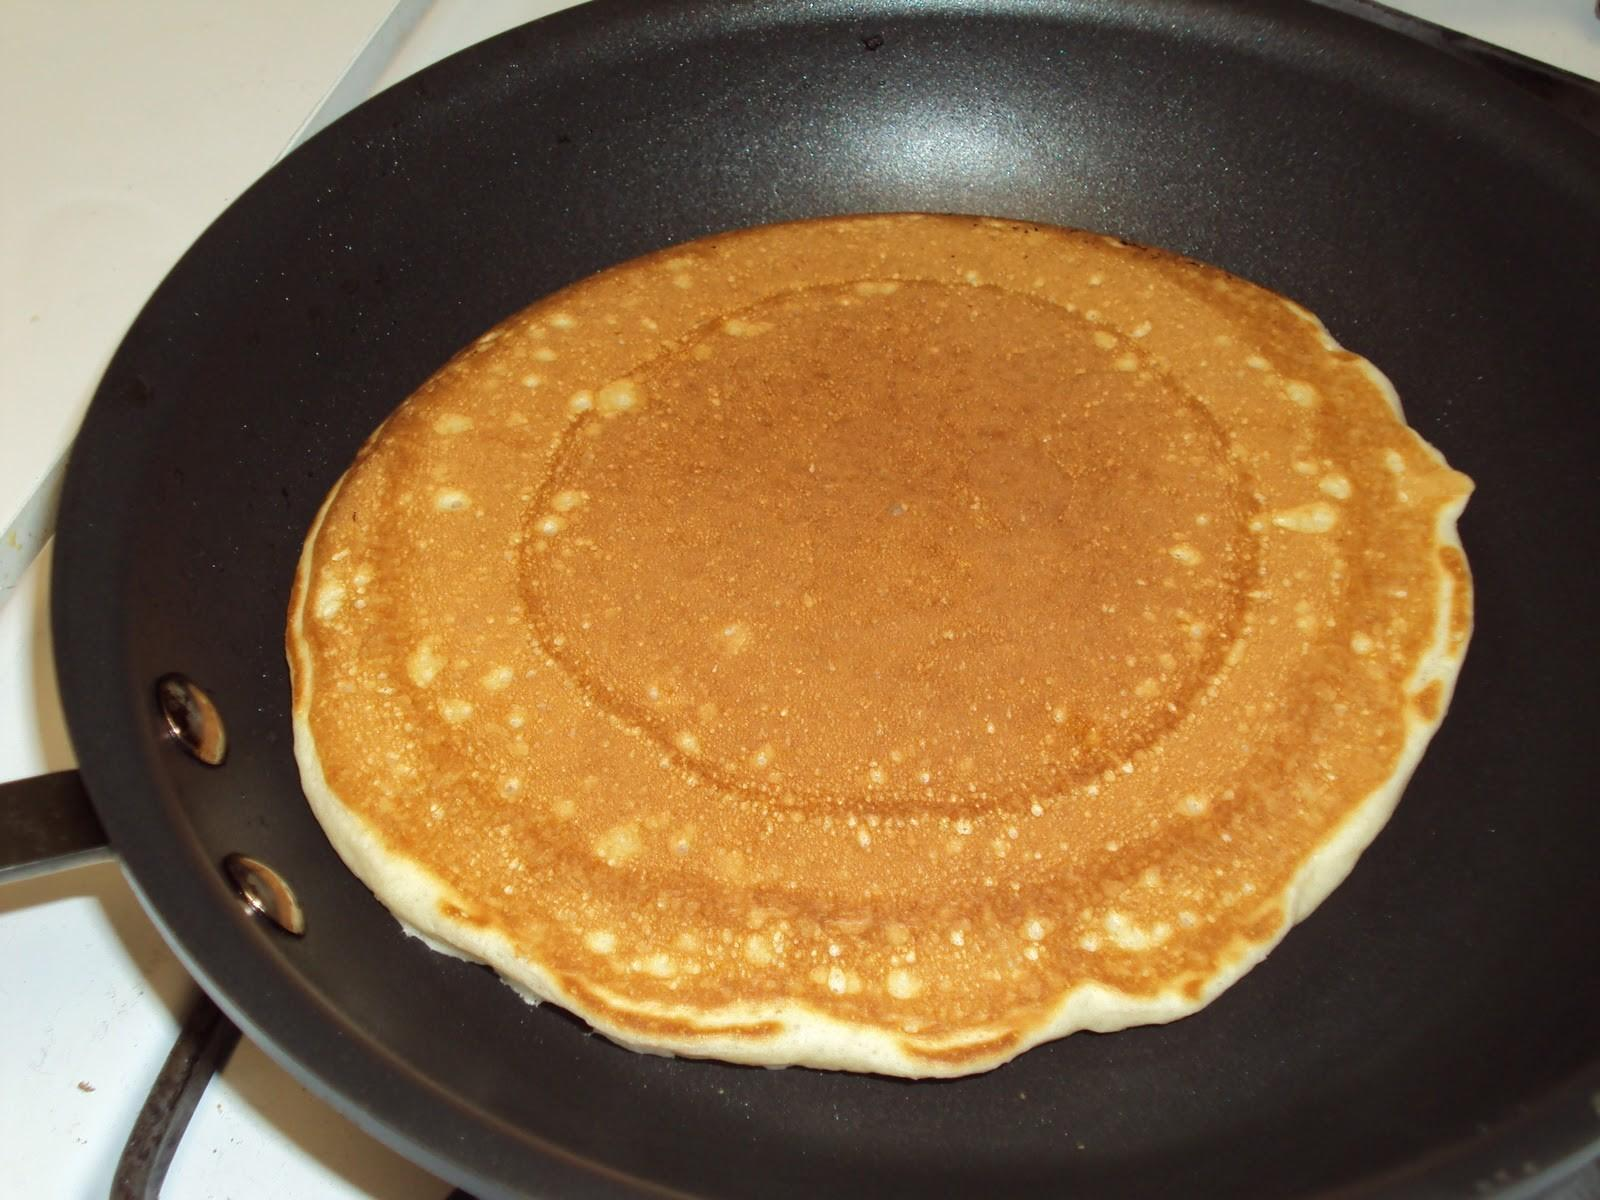 Homemade Pancakes Naked Celebs Caught